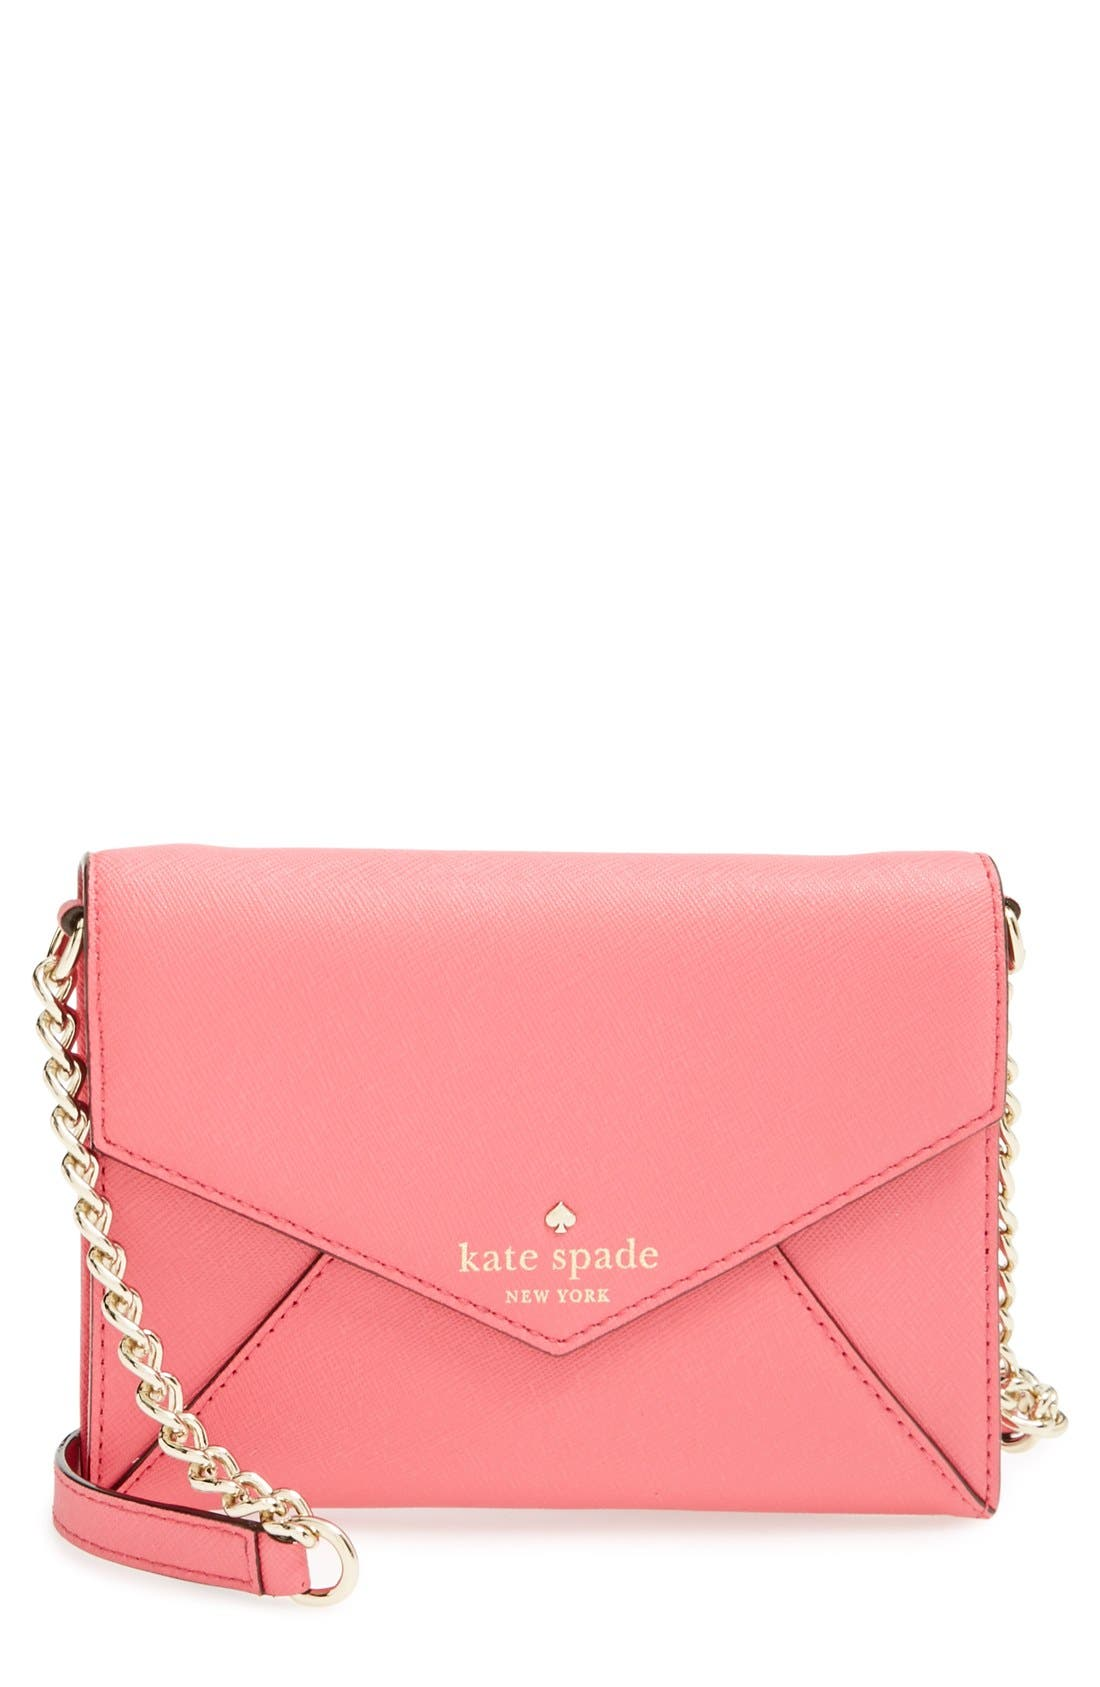 Main Image - kate spade new york 'cedar street - monday' crossbody bag